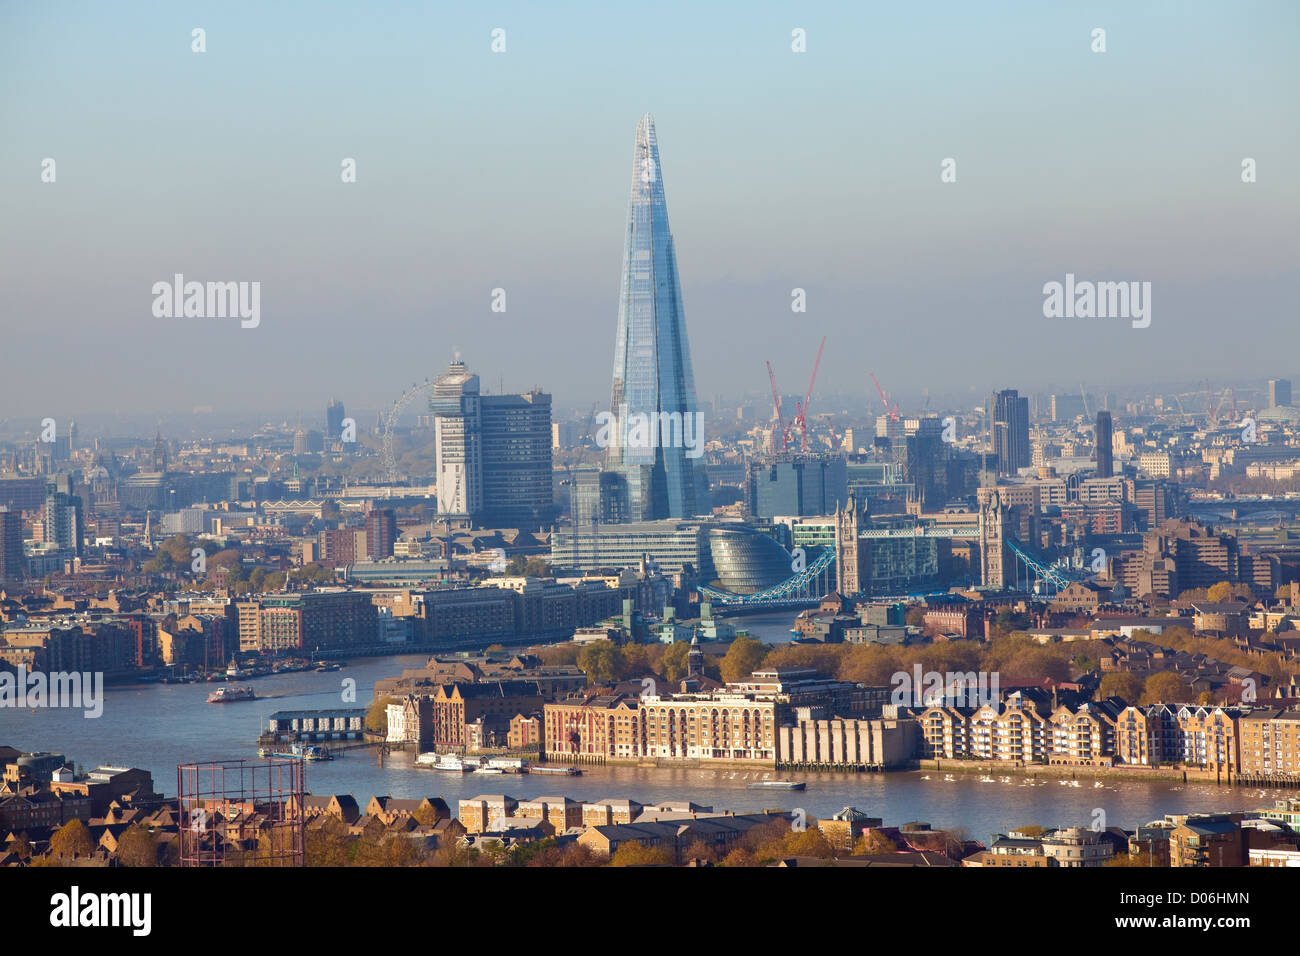 View looking west along the River Thames across to the Shard building, London from Canary Wharf, London, England, United Kingdom Stock Photo